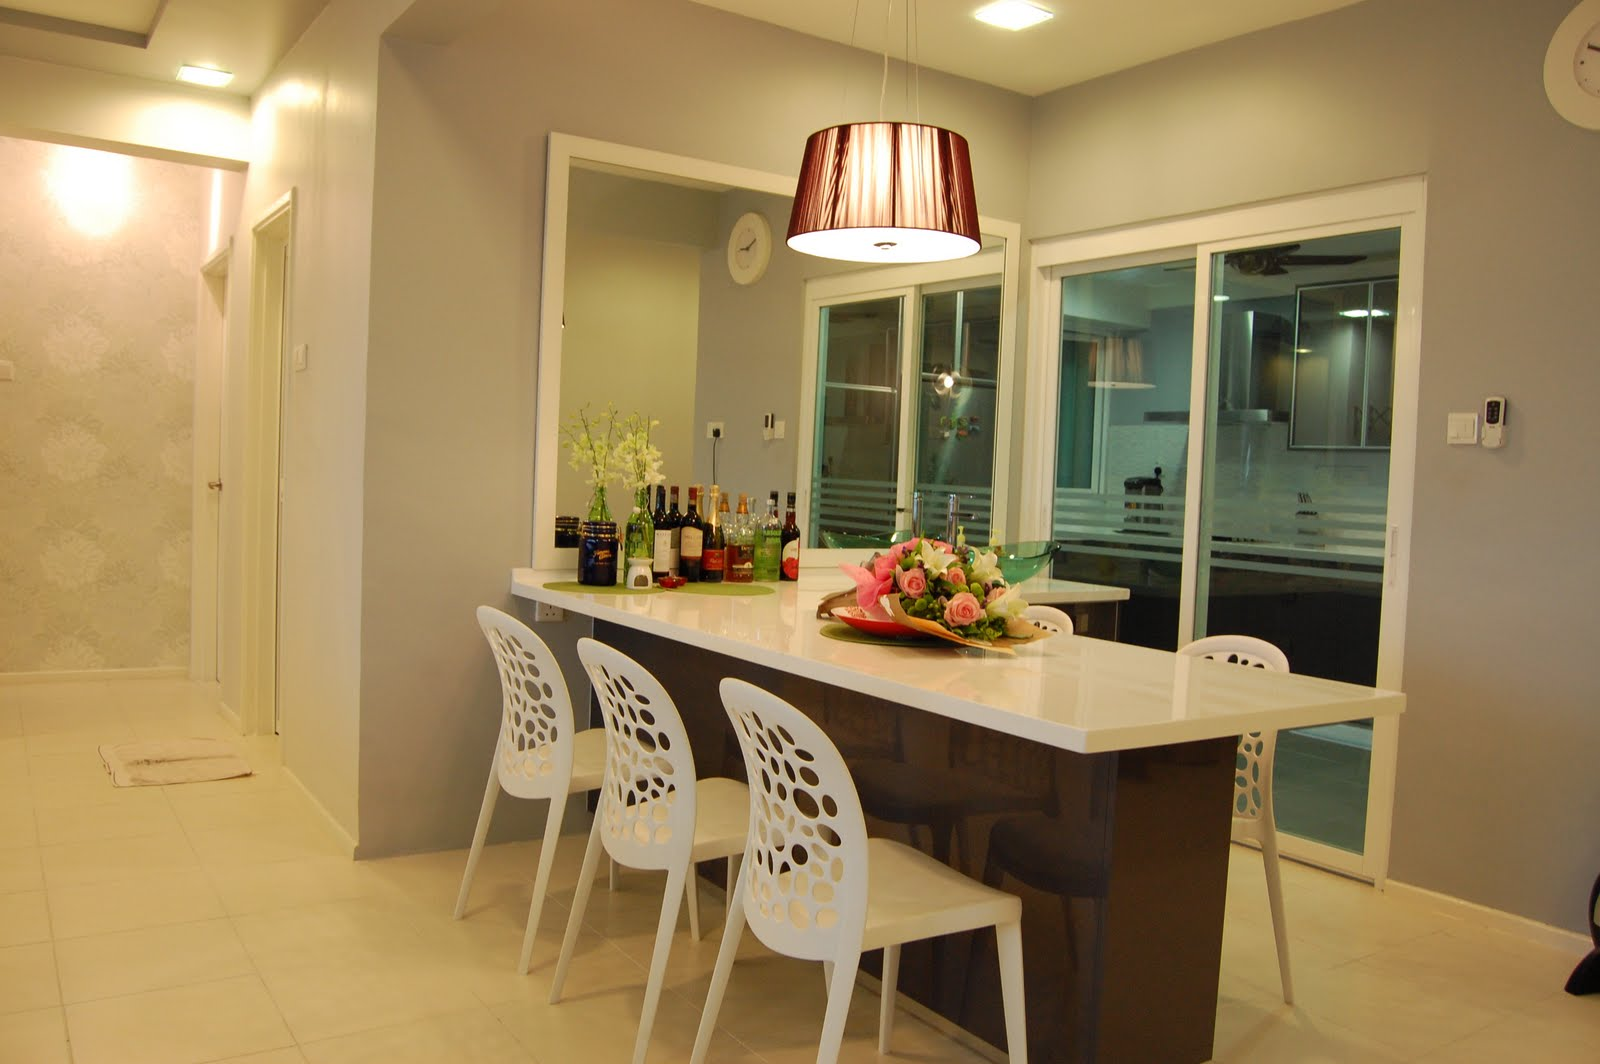 small apartment interior design malaysia slate table lamps image